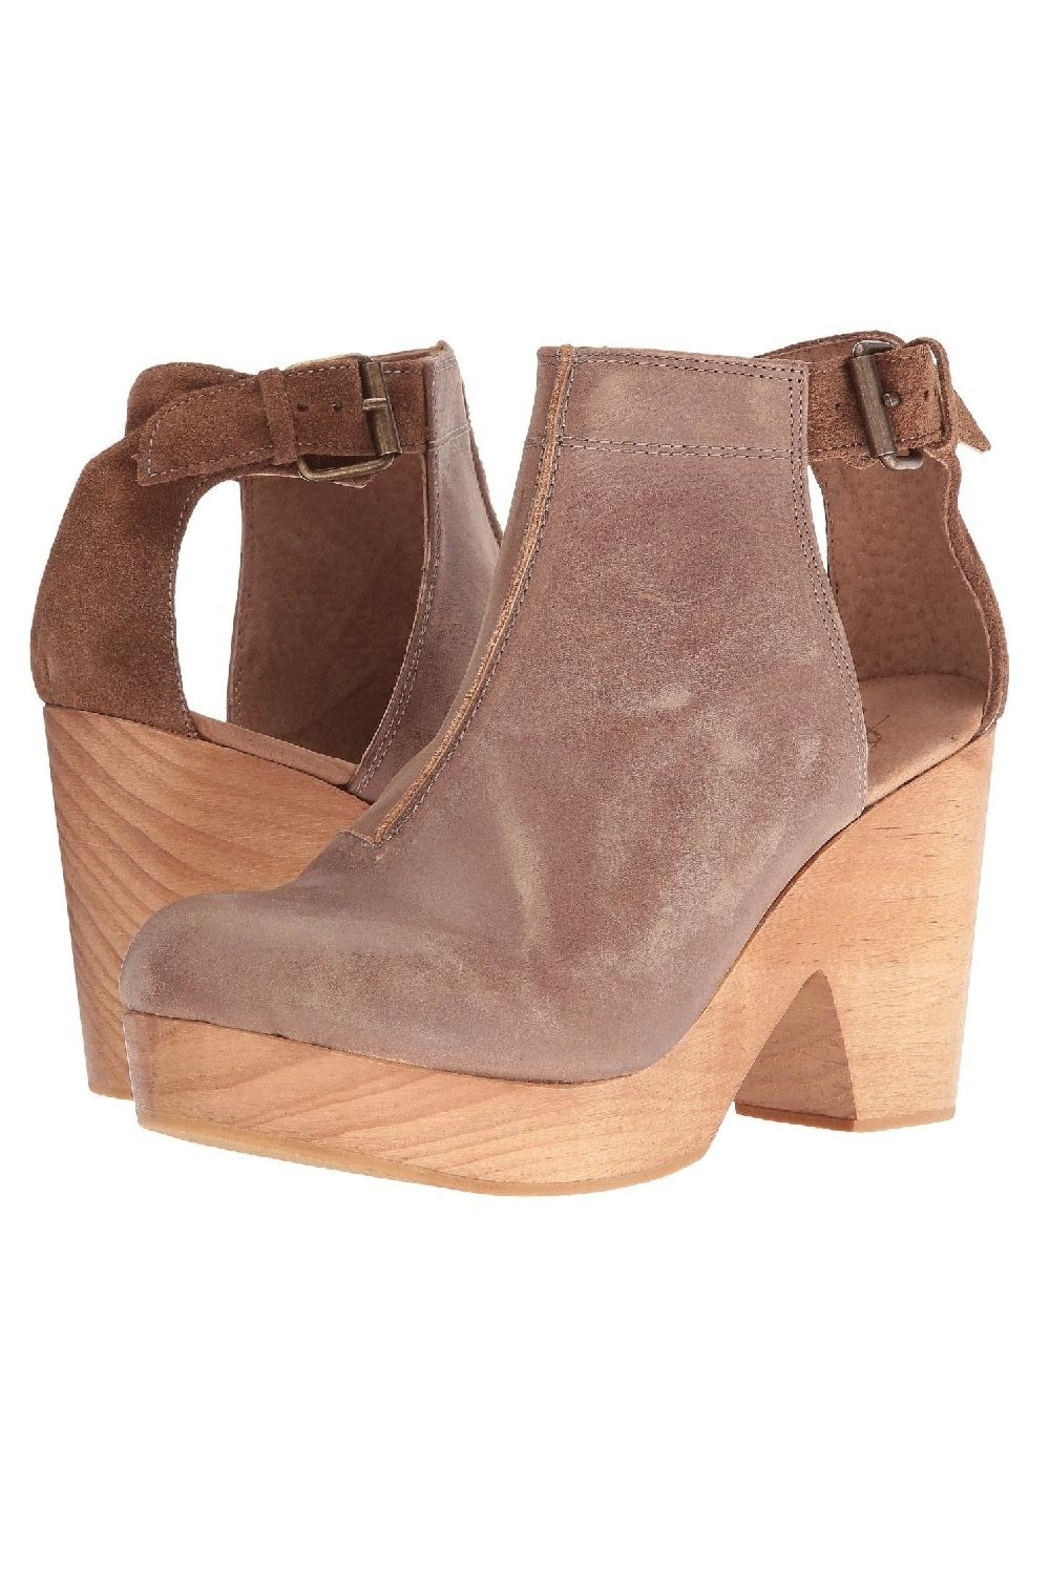 Free People Amber Orchard Clog - Back Cropped Image